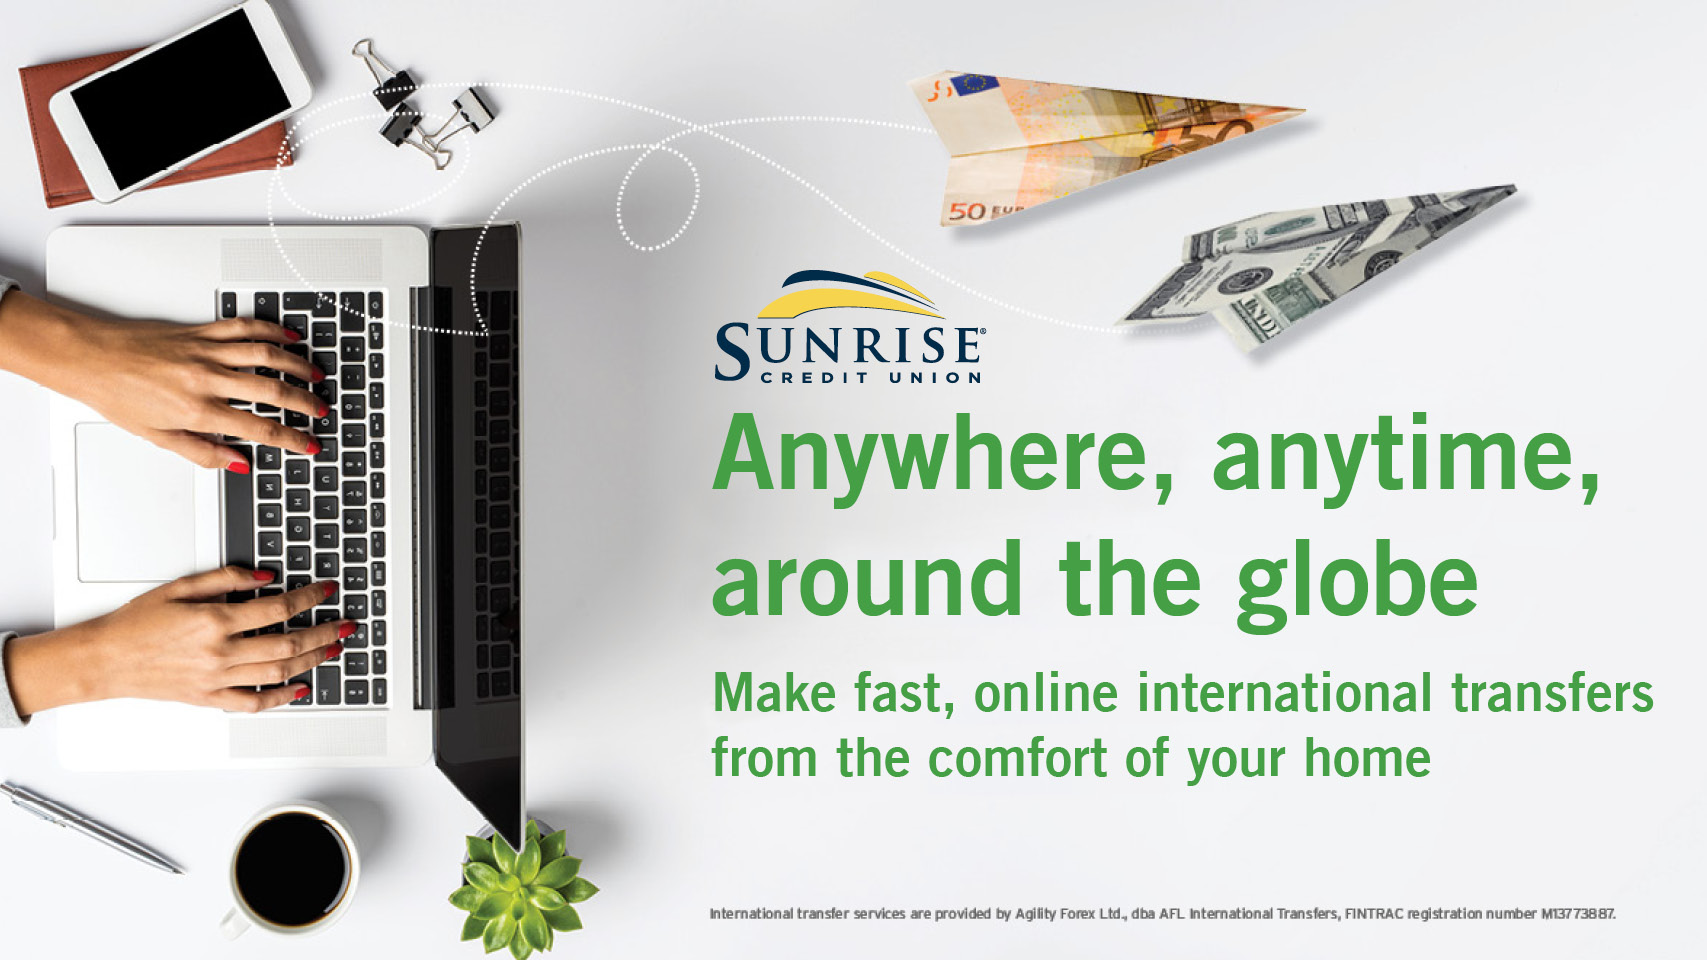 Anywhere, anytime, around the globe. Make fast, online international transfers from the comfort of your home through Sunrise Credit Union.